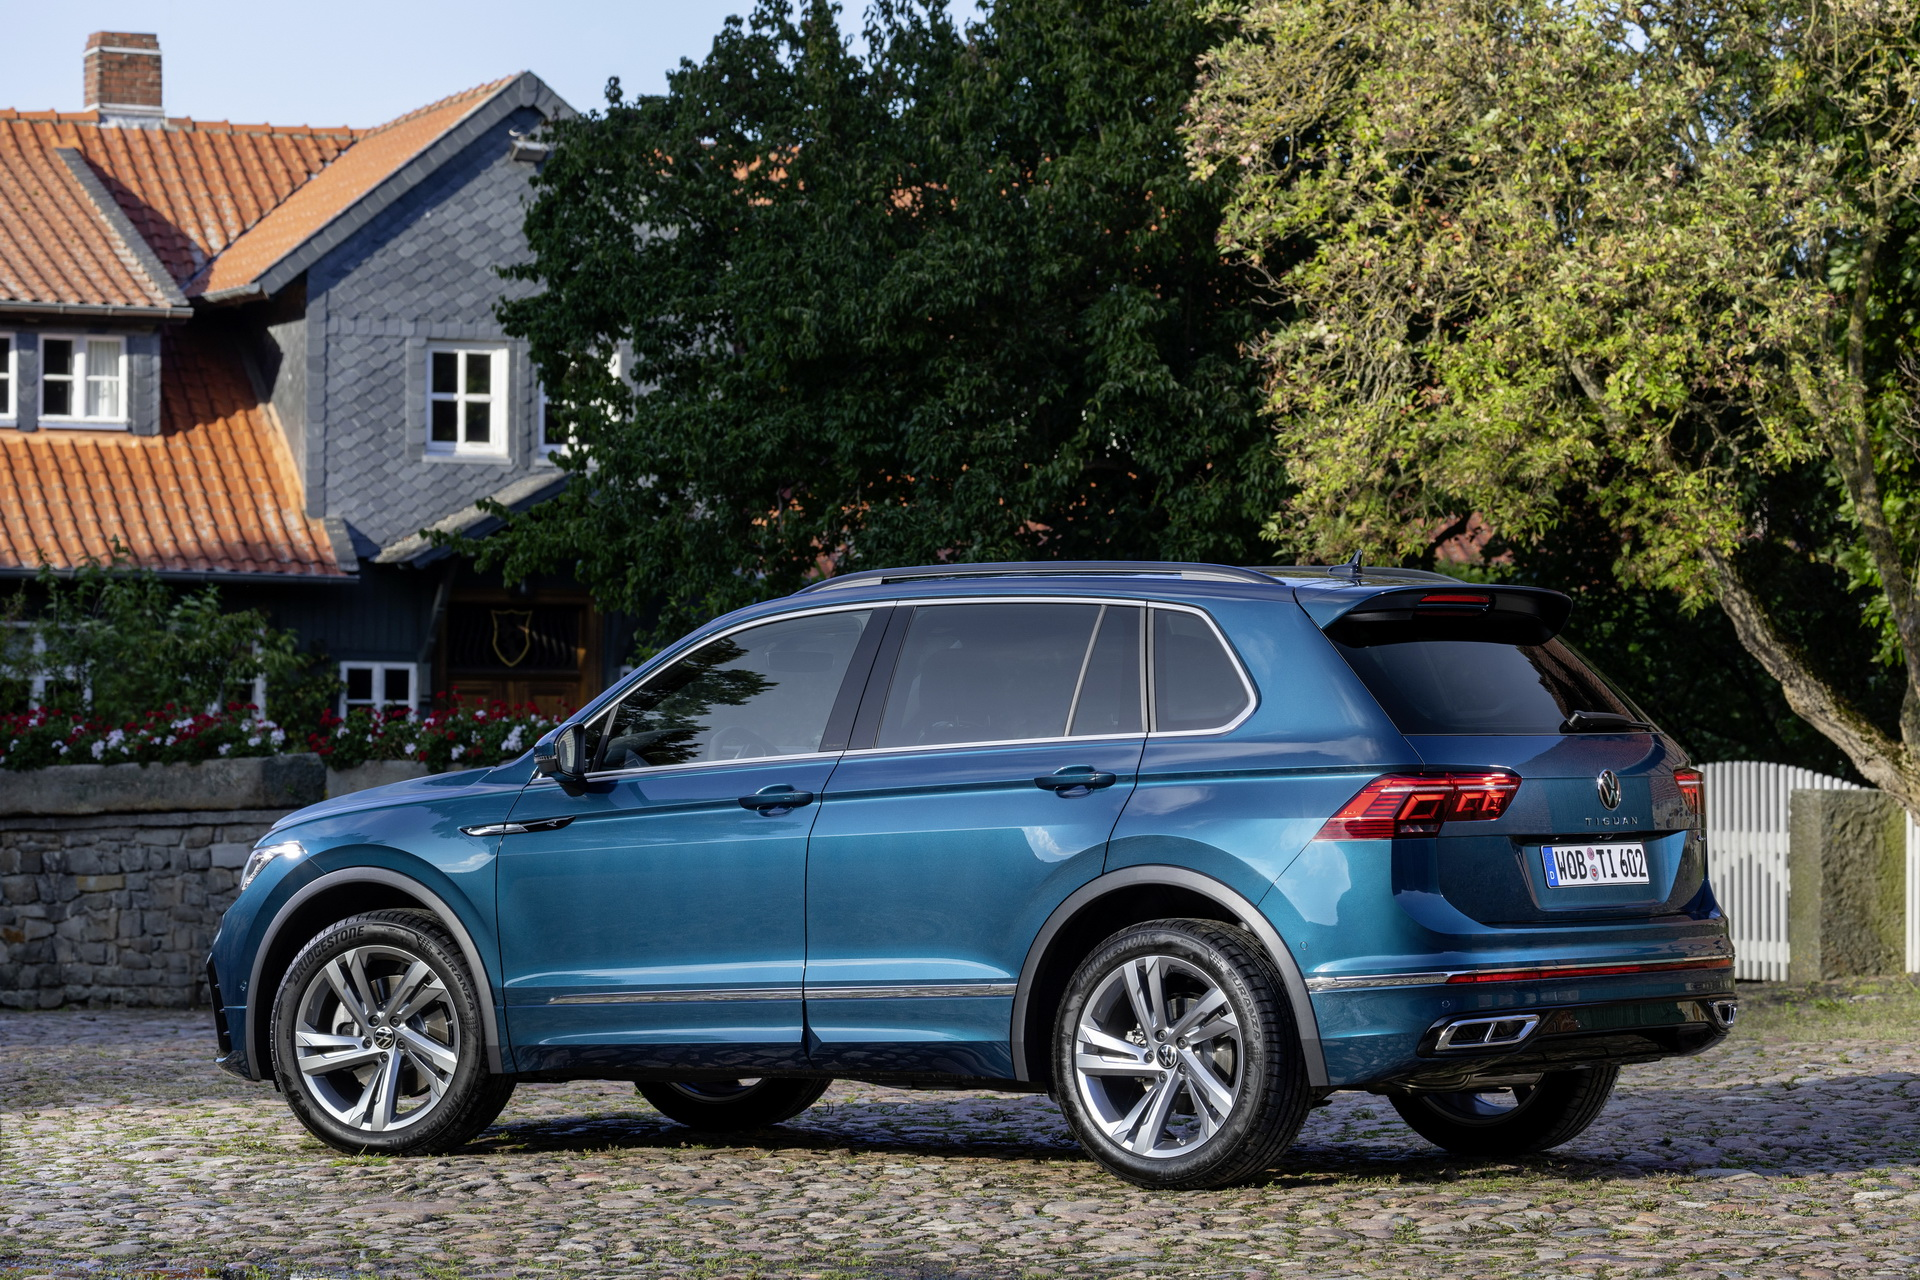 2021 VW Tiguan Launches In The UK, Starts At £24,915 ...